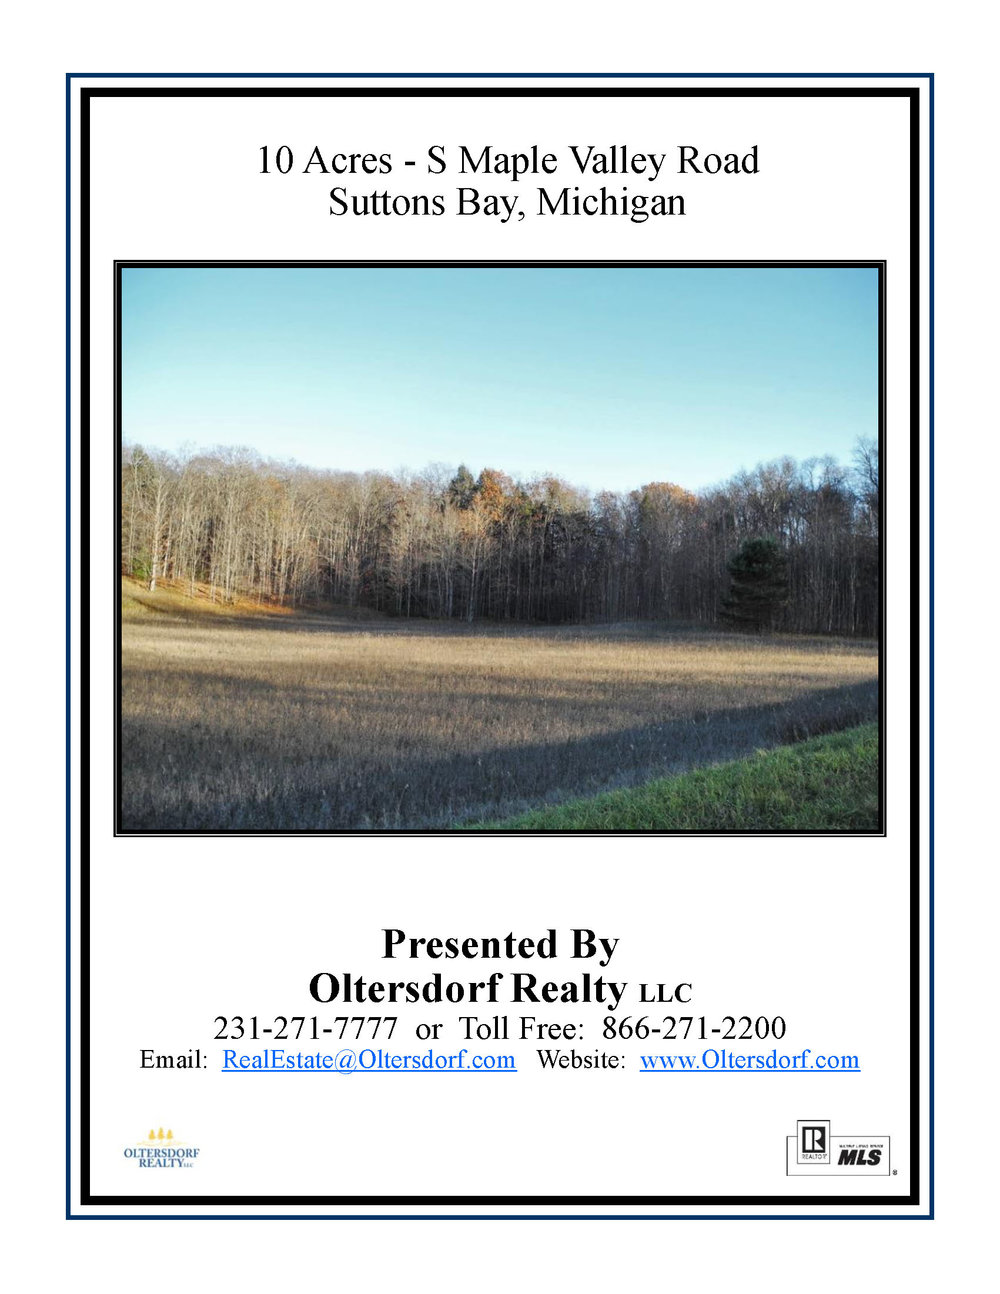 S Maple Valley Road, Suttons Bay, MI – 10.00 Acre Vacant Parcel  for sale by Oltersdorf Realty LLC (4).jpg